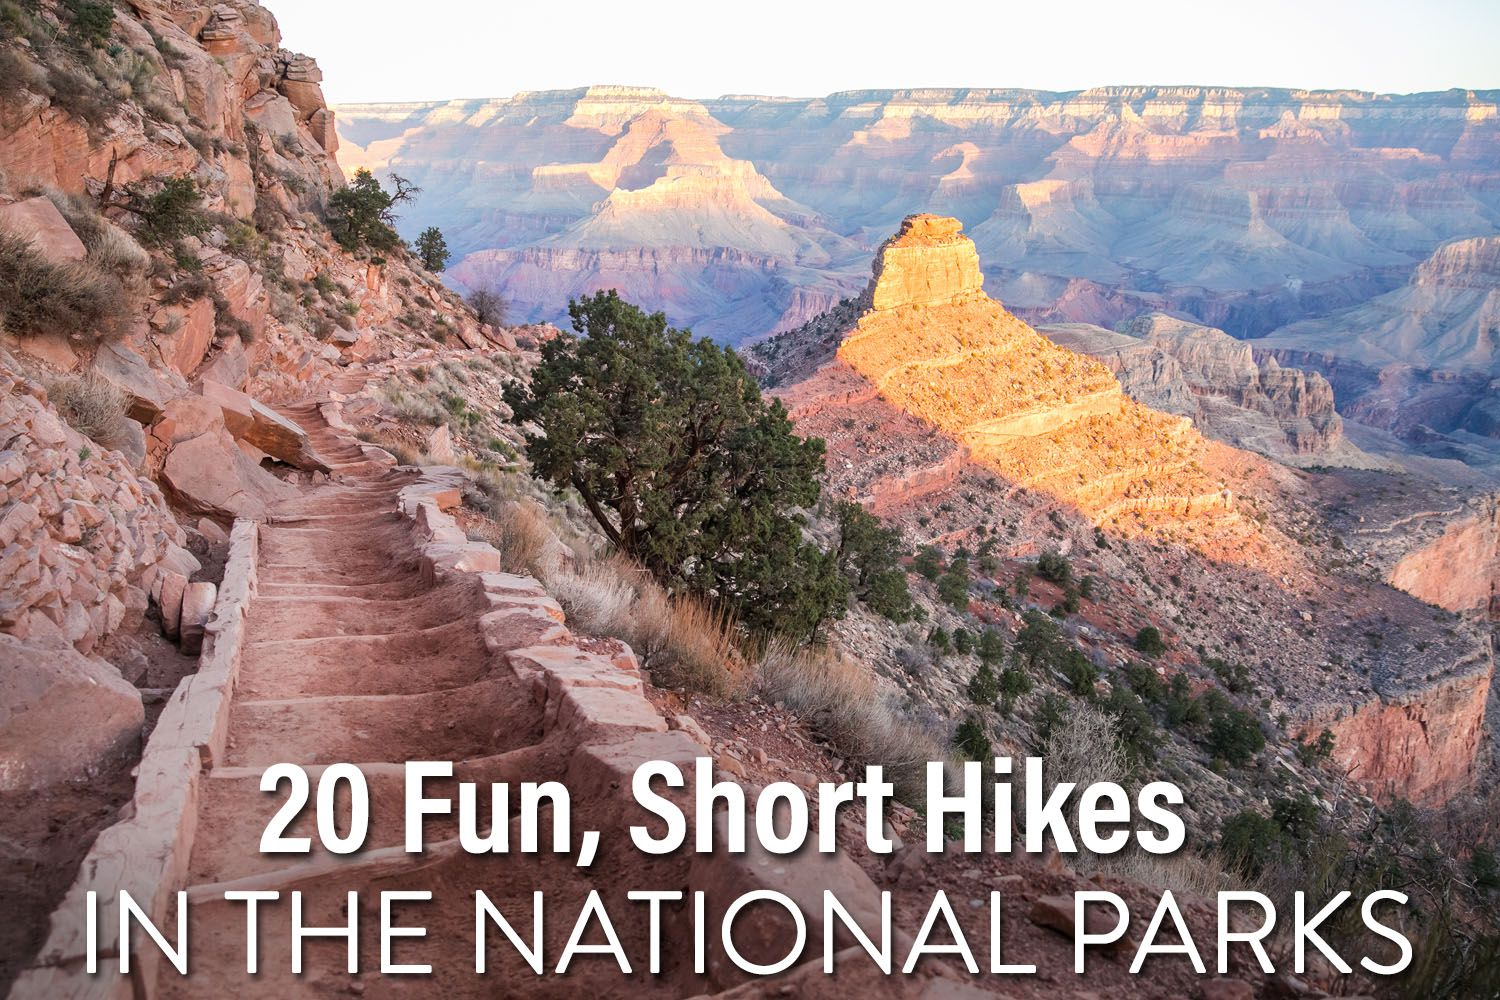 Short Hikes in National Parks